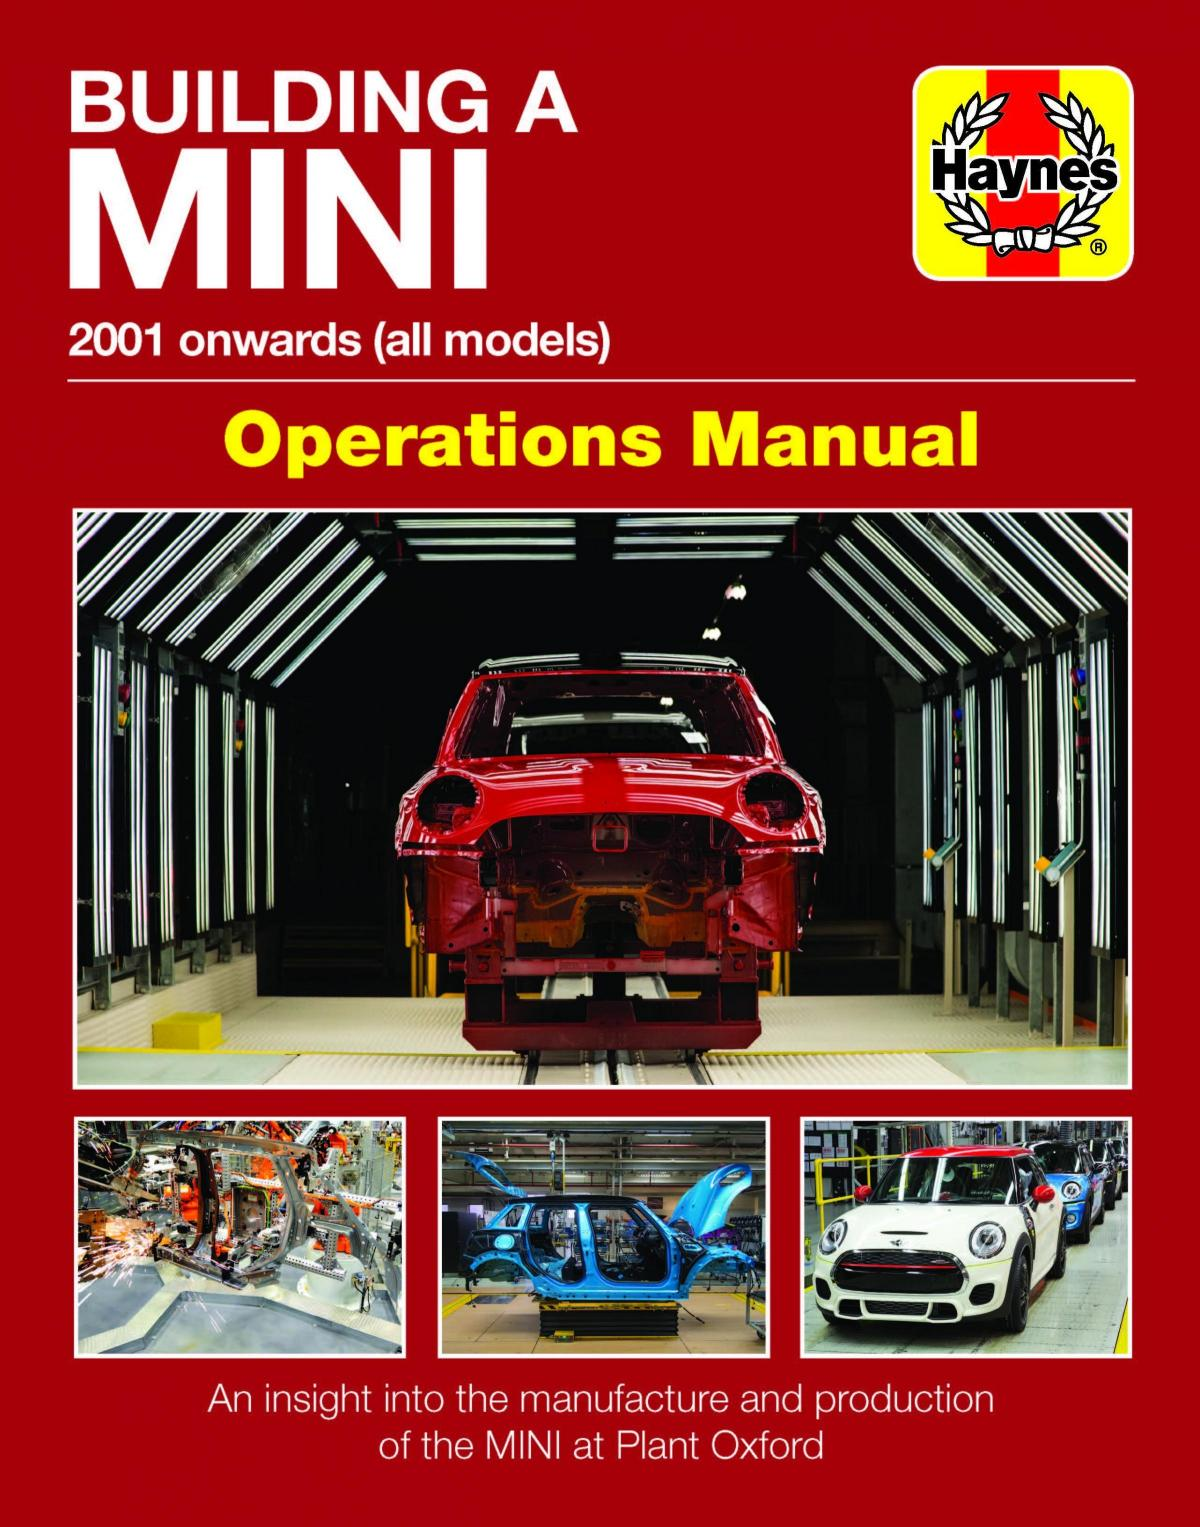 Ever wondered how they build the Mini? Now you can find out